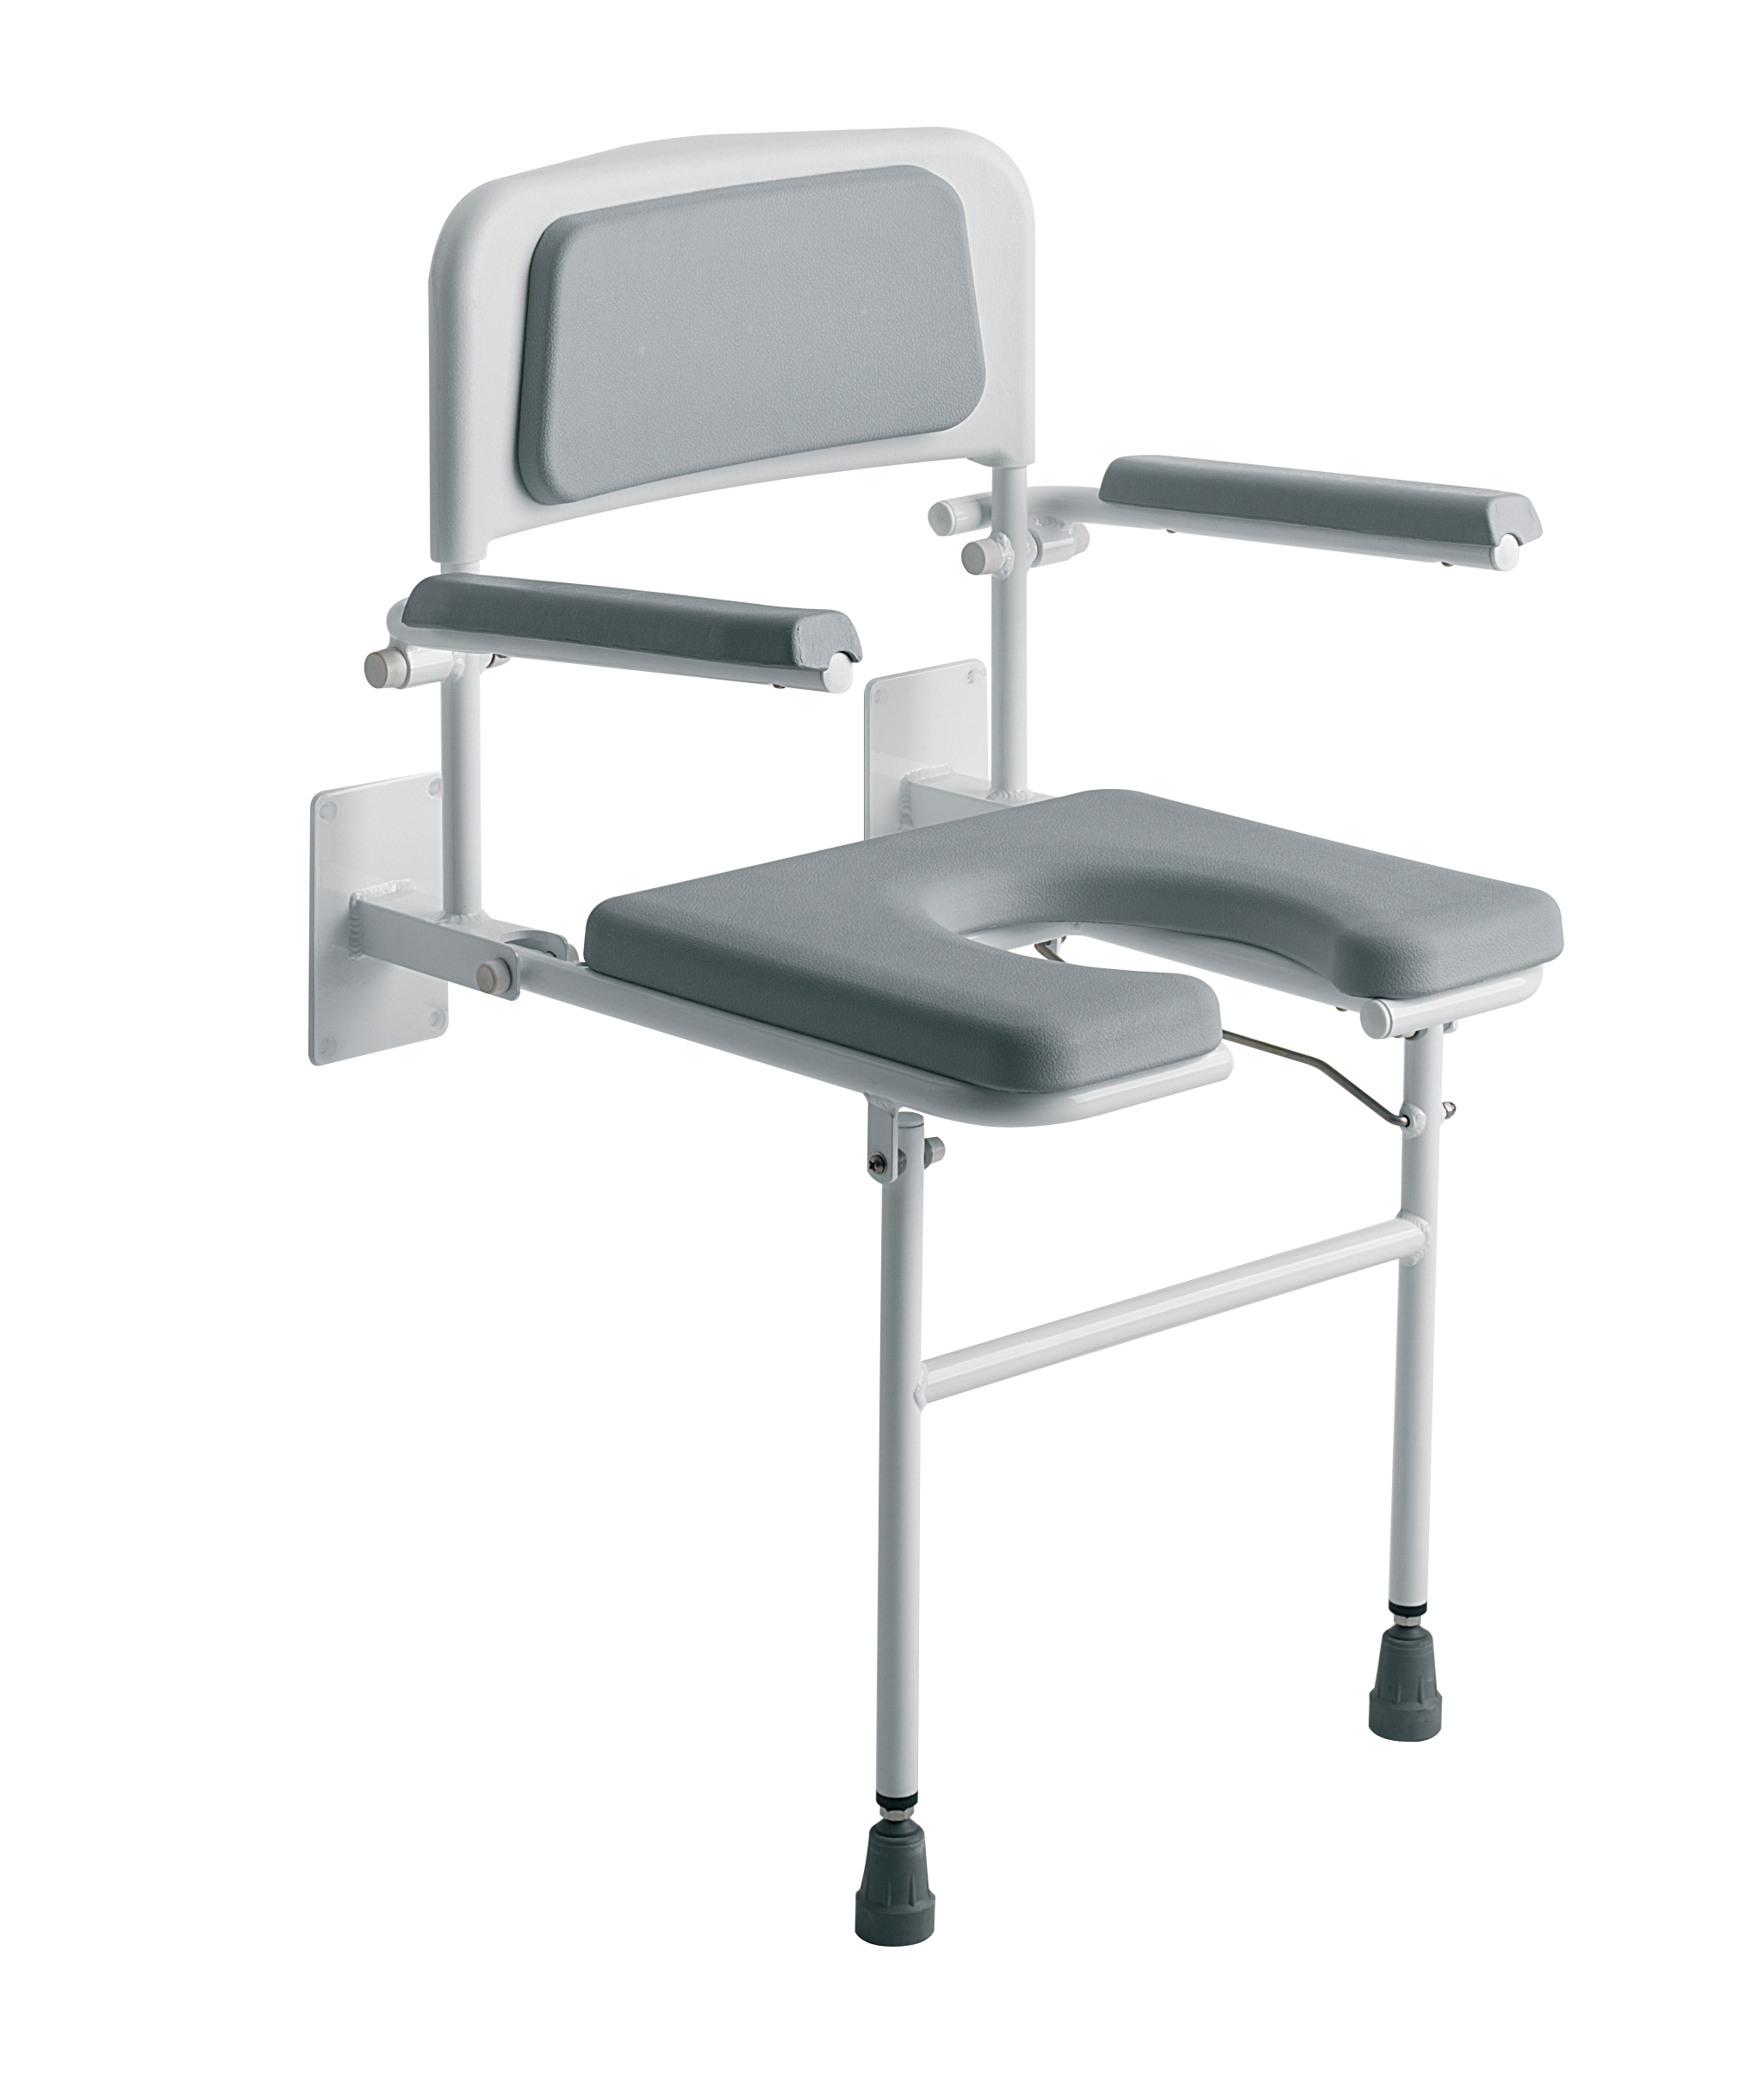 wall chair mounted fold ultralife up shower healthcare product